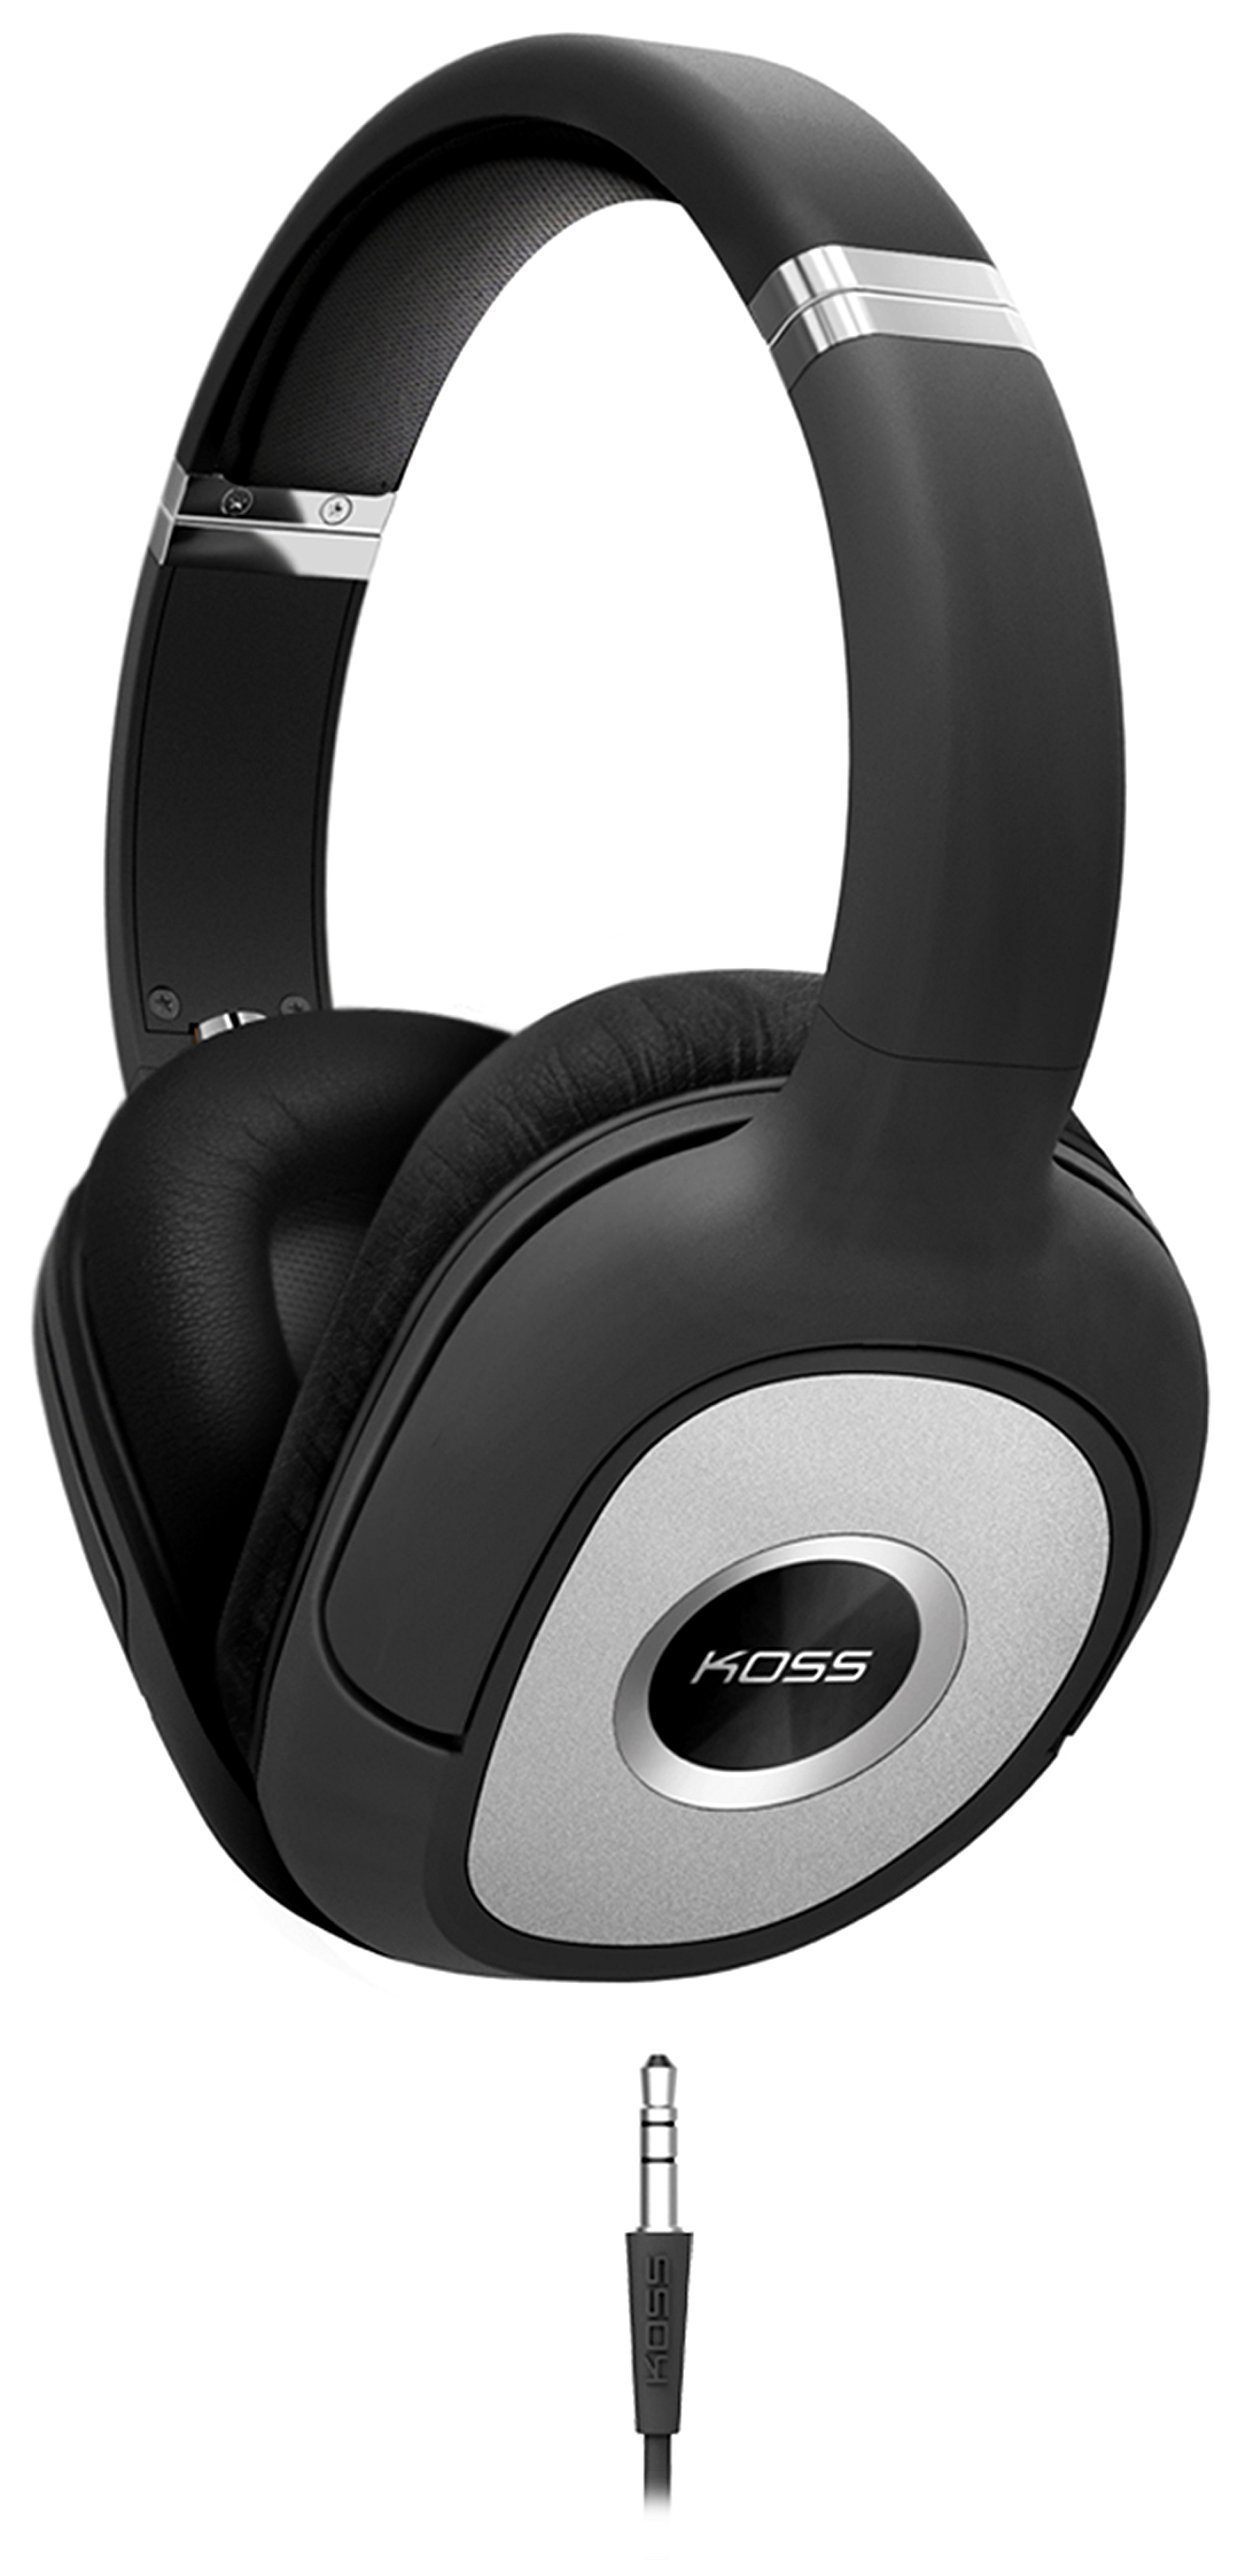 Koss SP540 Full Size Dynamic Headphones, Black with Silver Accents